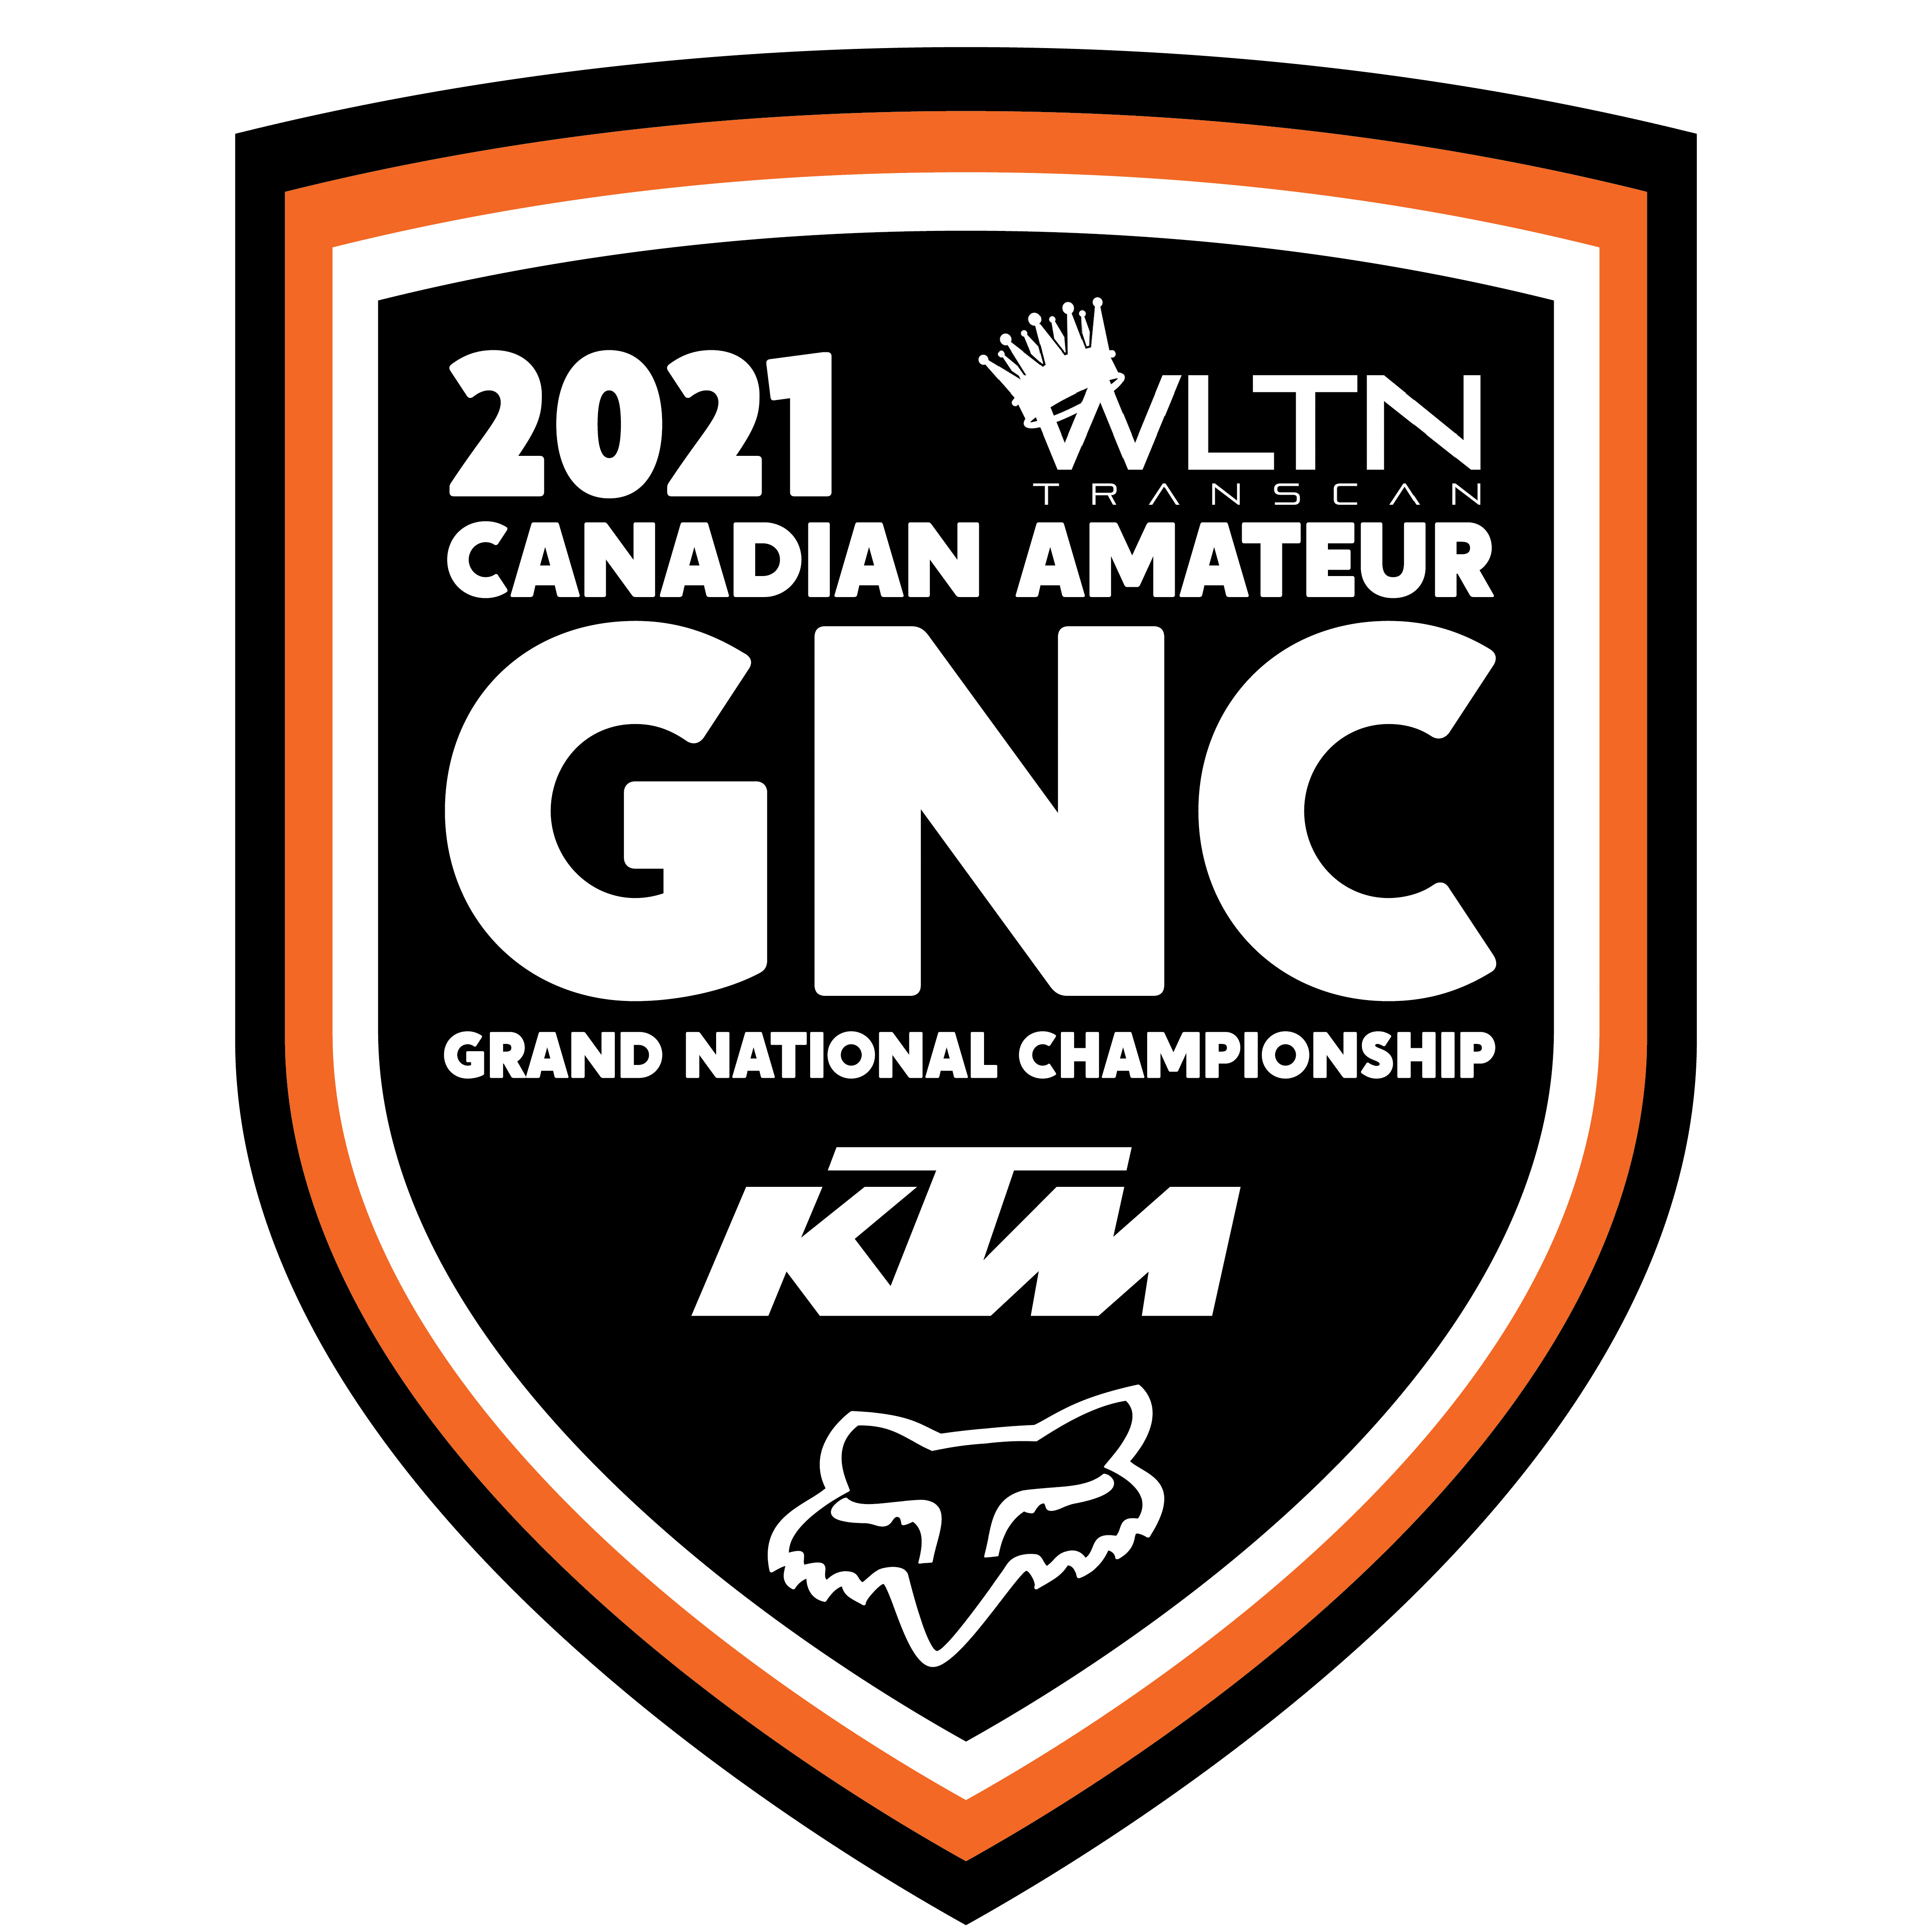 2021 Walton TransCan Grand National Motocross Championship